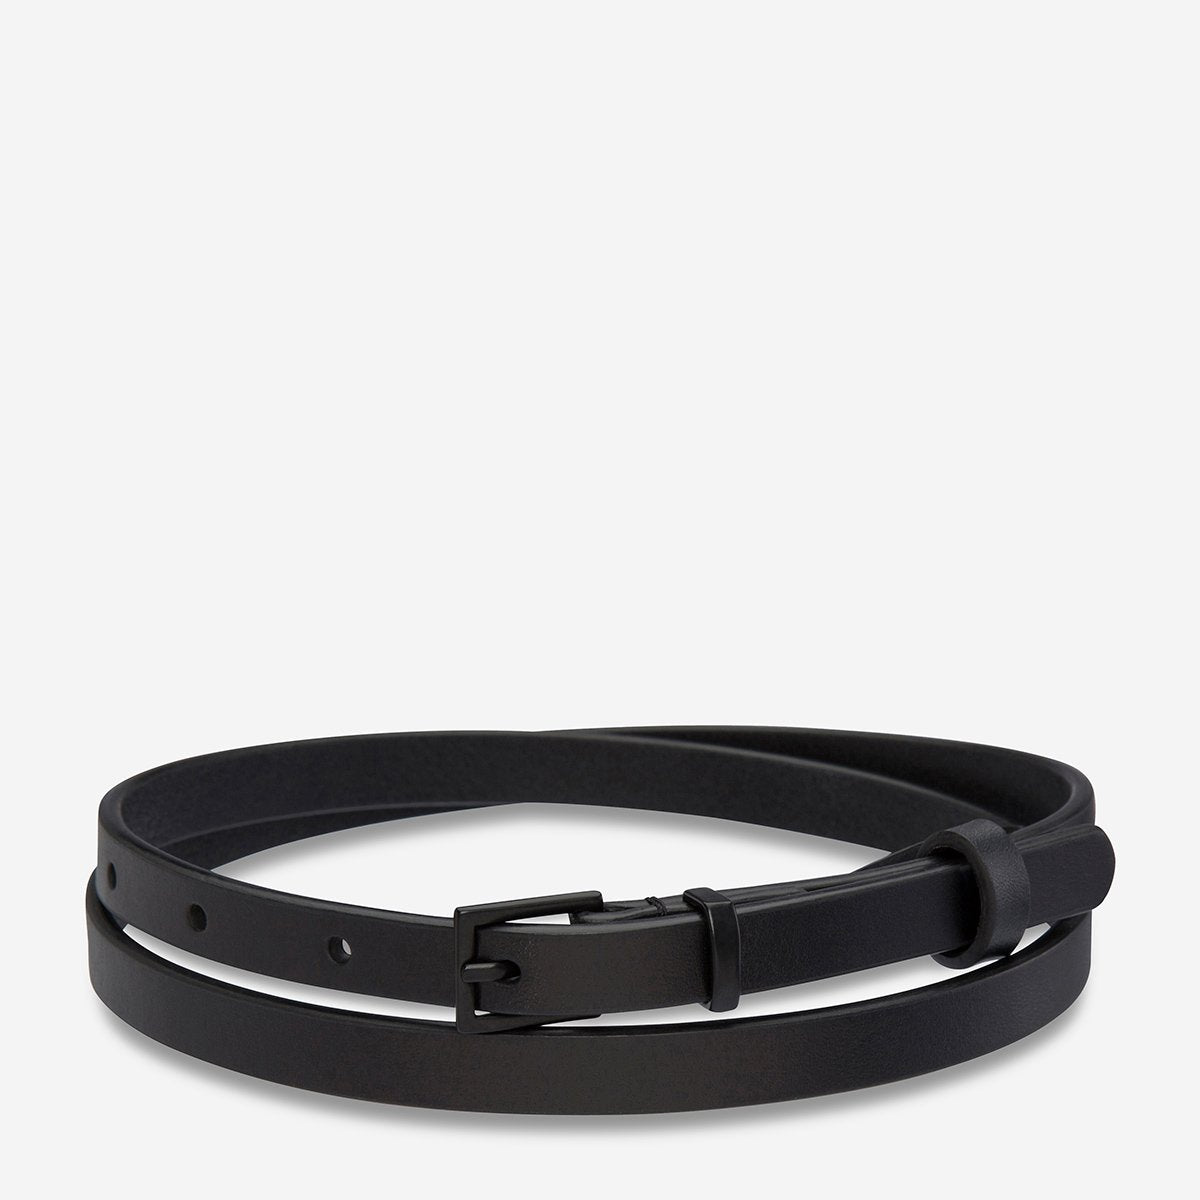 STATUS ANXIETY  //  One Little Victory Belt BLACK